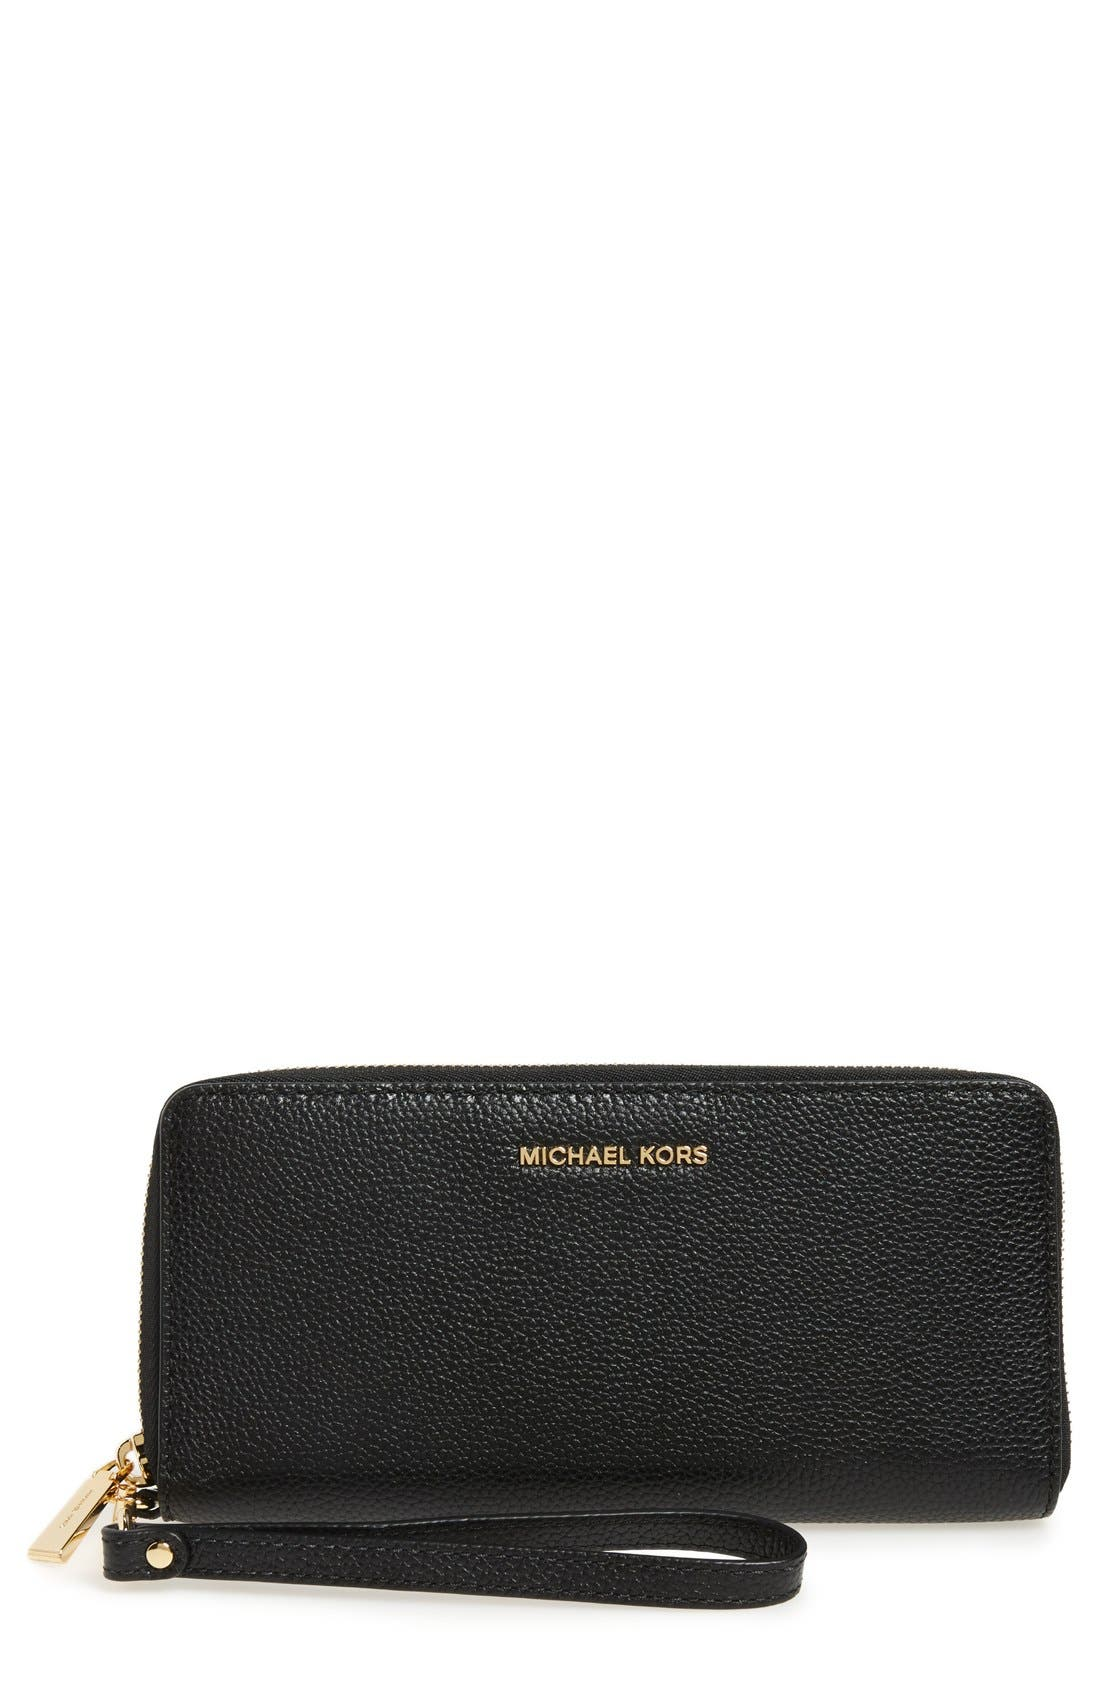 'Mercer' Leather Continental Wallet,                             Main thumbnail 1, color,                             Black/ Gold